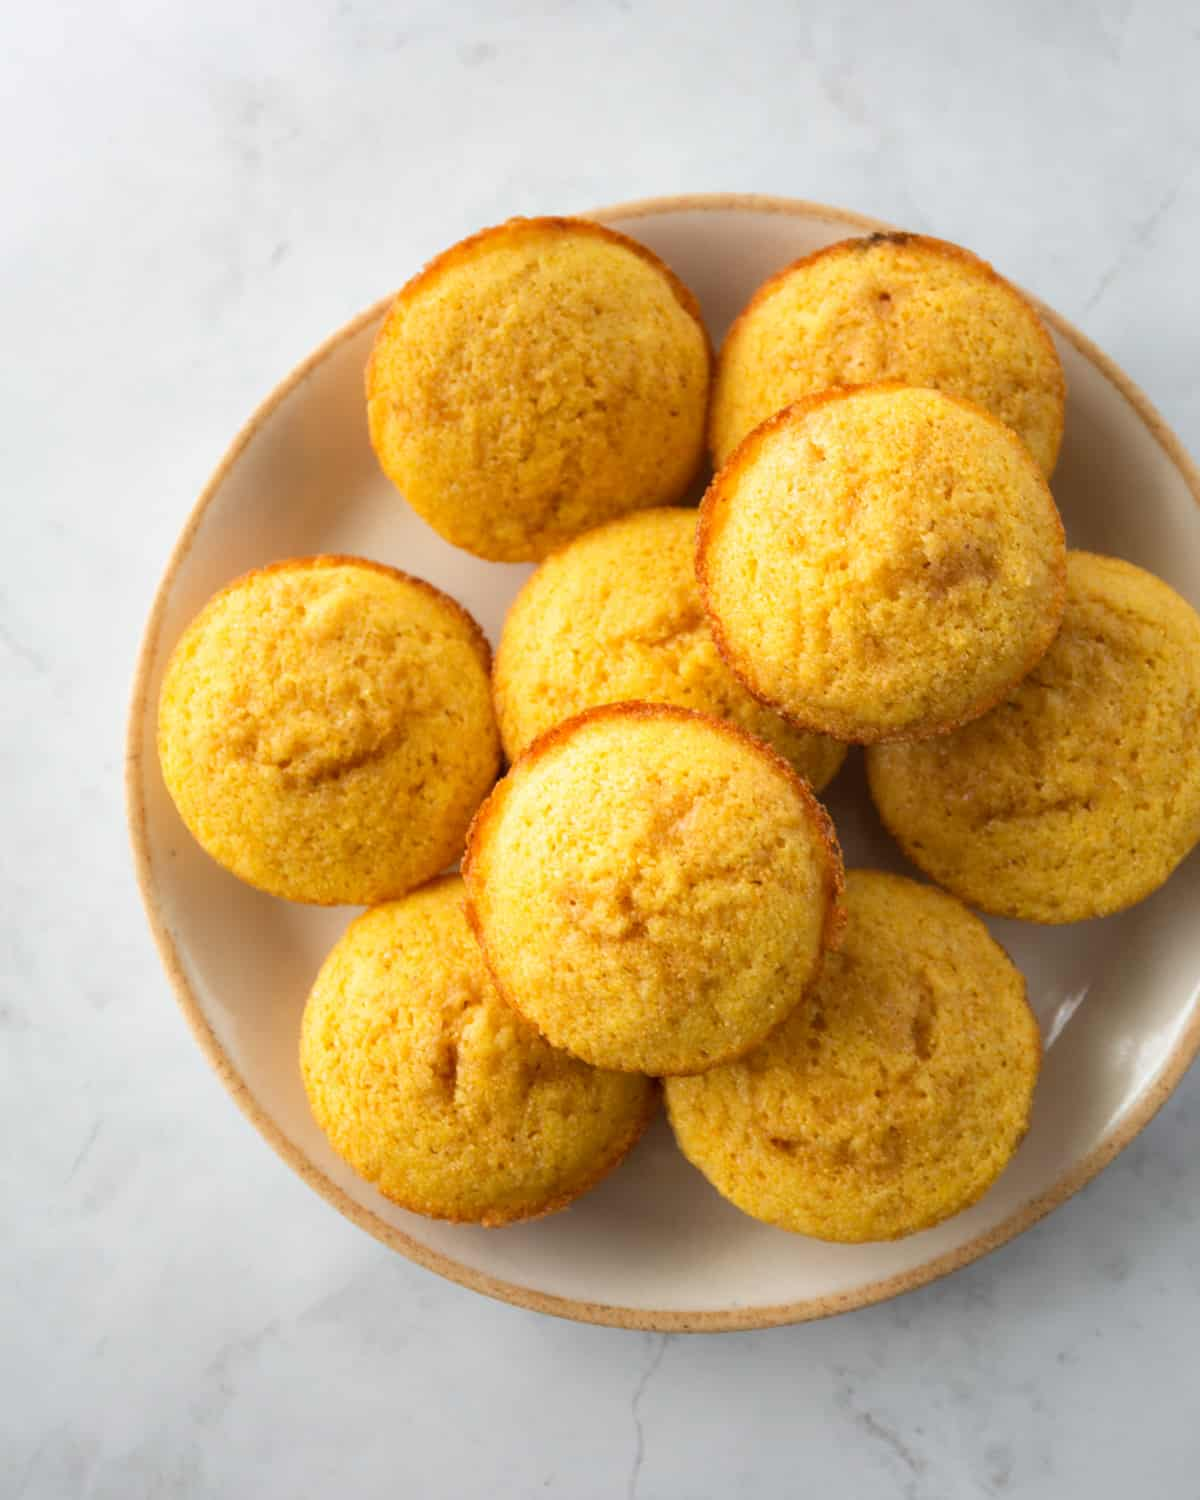 cornmeal cakes on a white plate